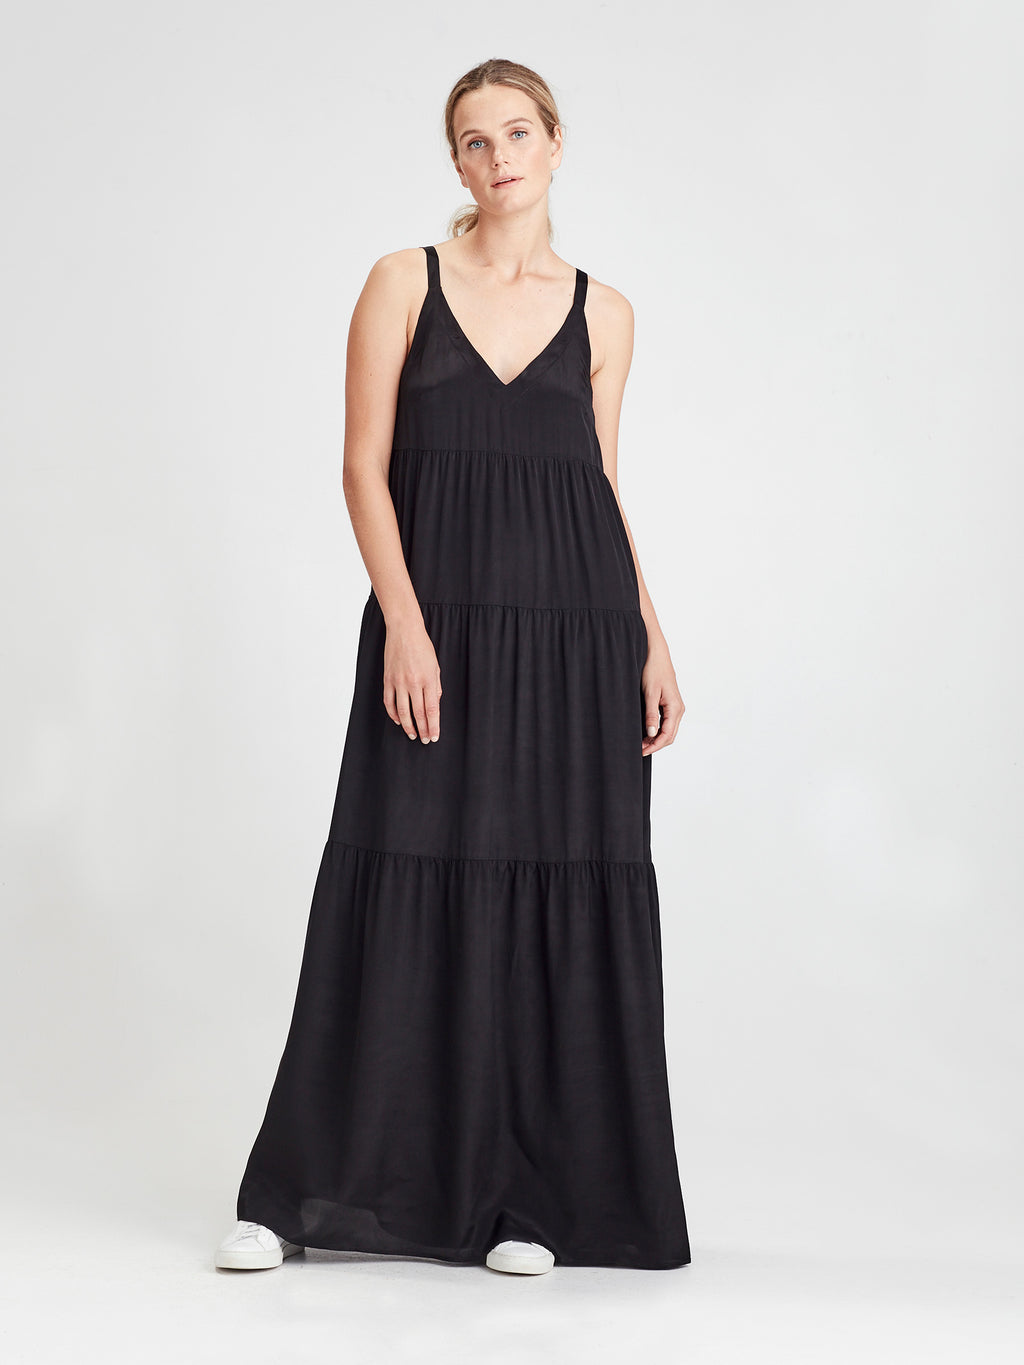 Anmari Dress (Viscose Silk) Black